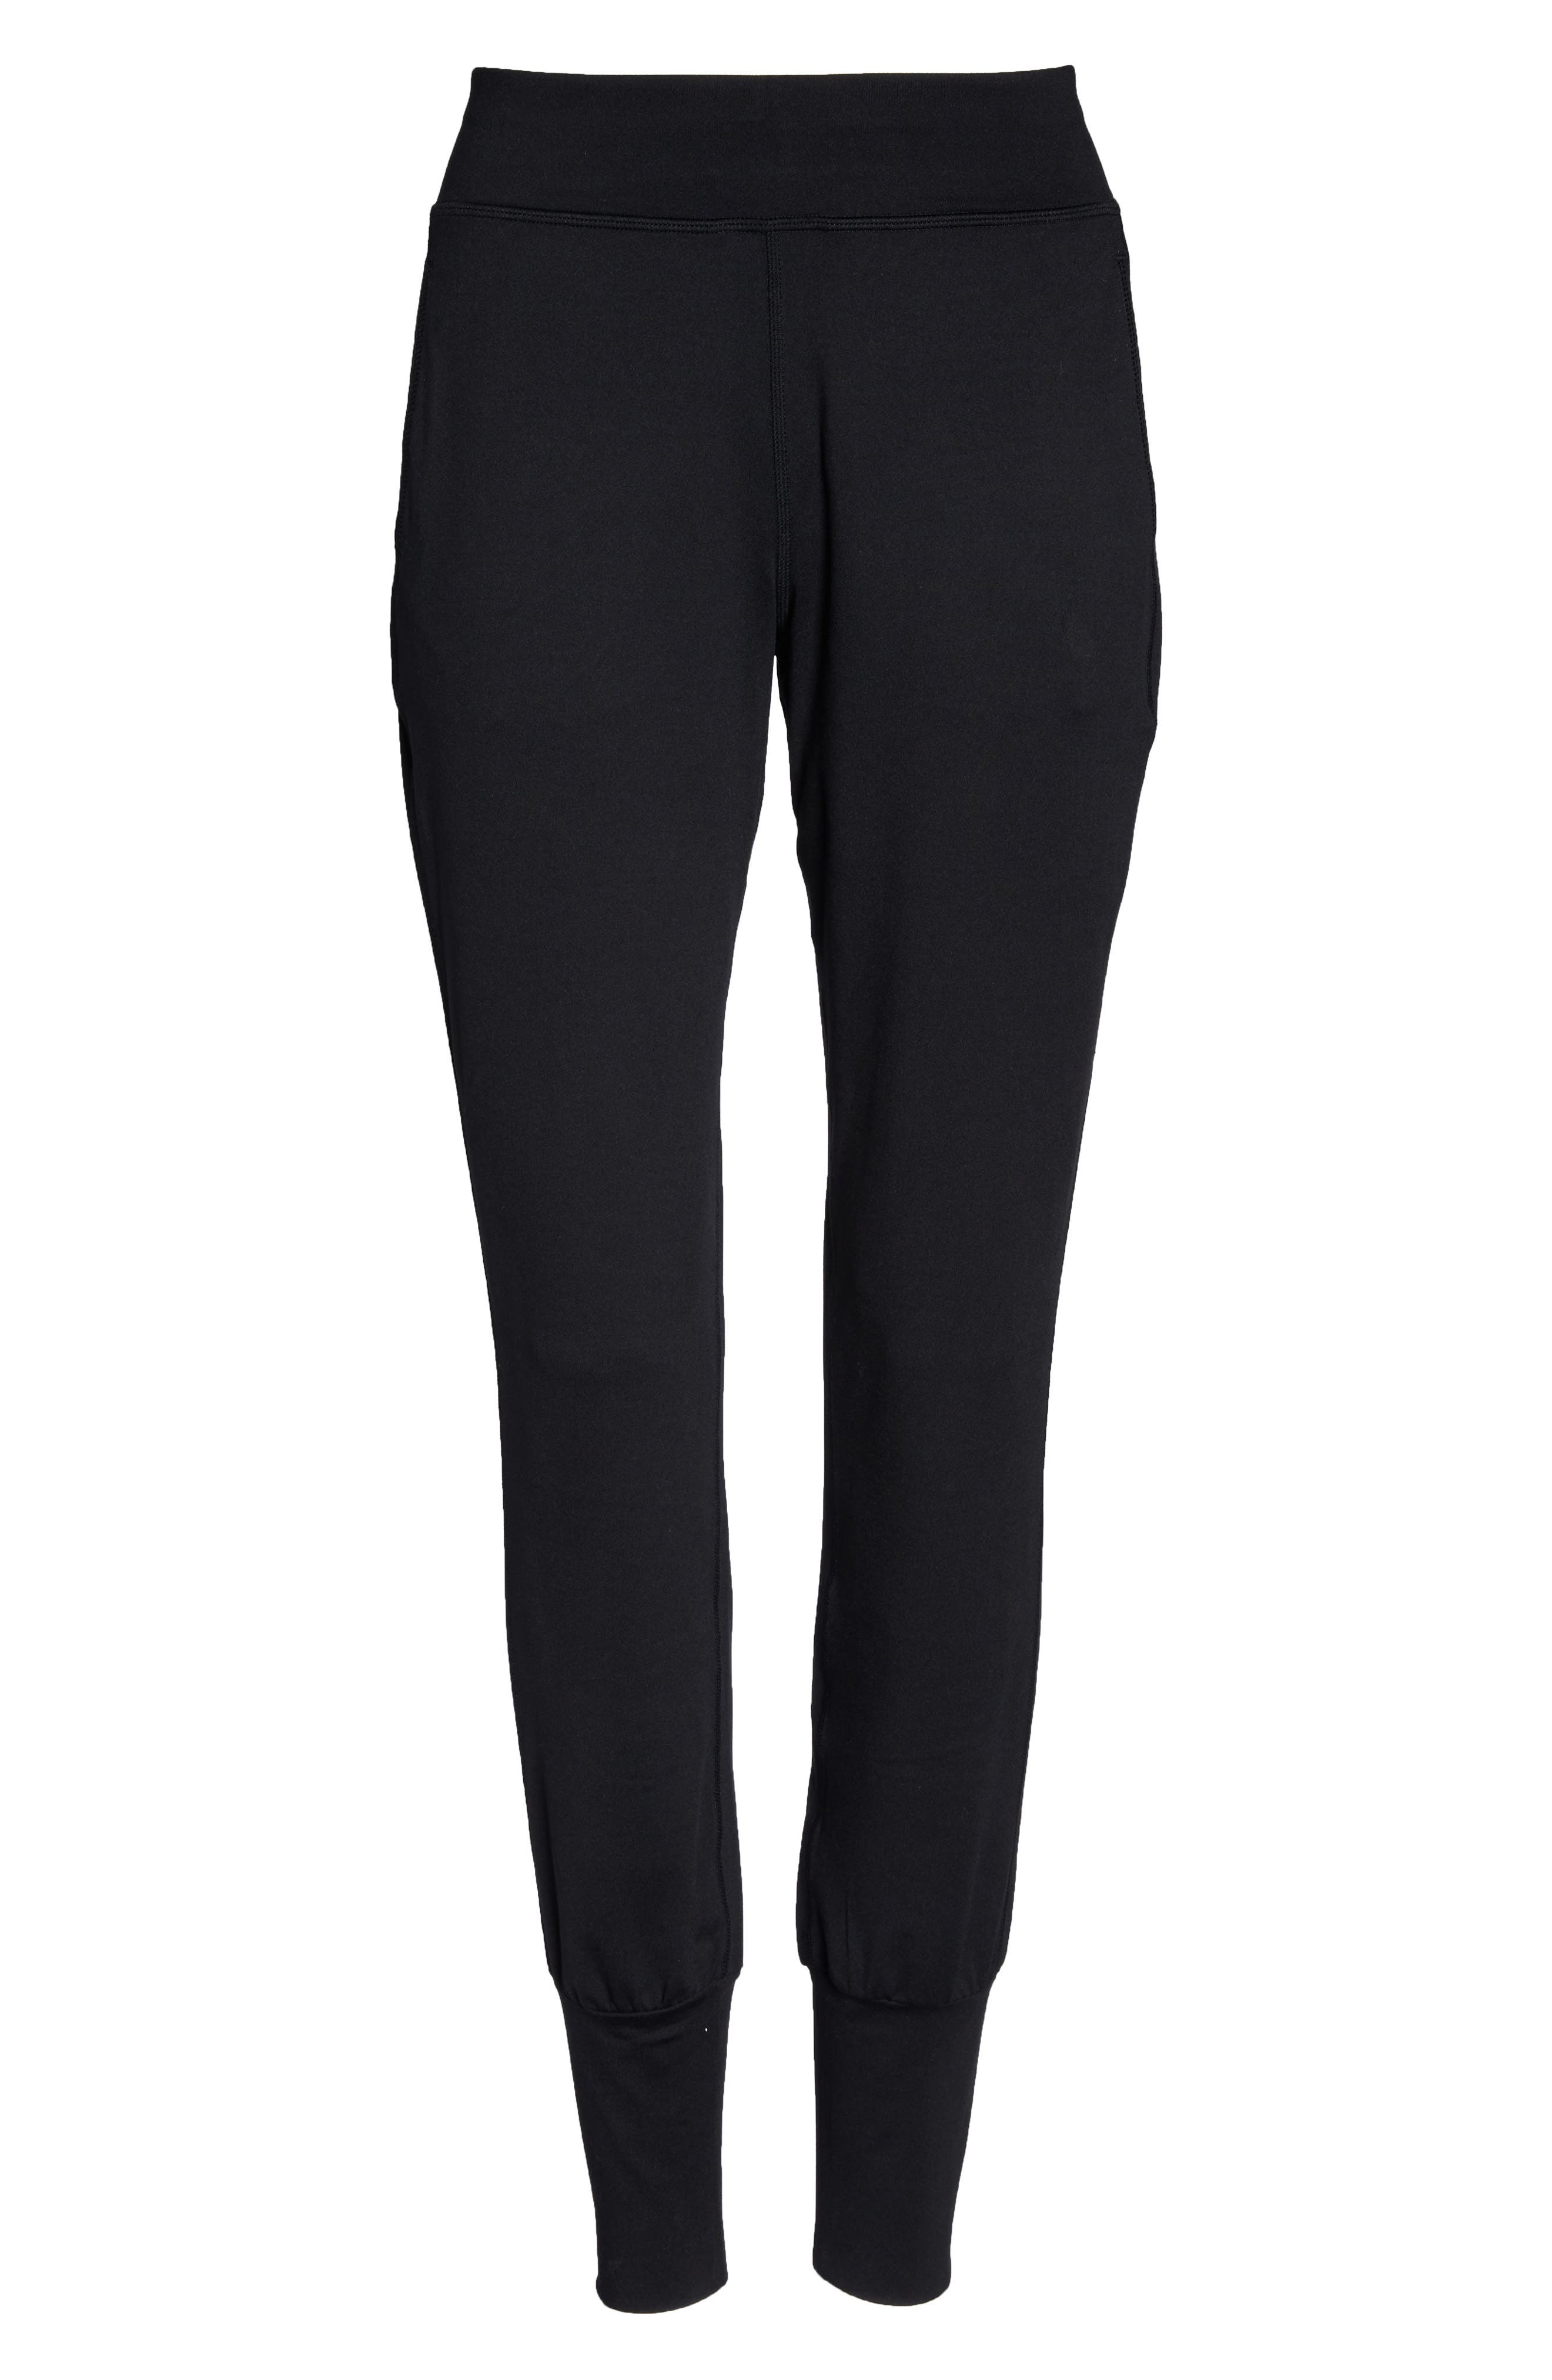 Garudasana Yoga Trousers,                             Alternate thumbnail 7, color,                             BLACK